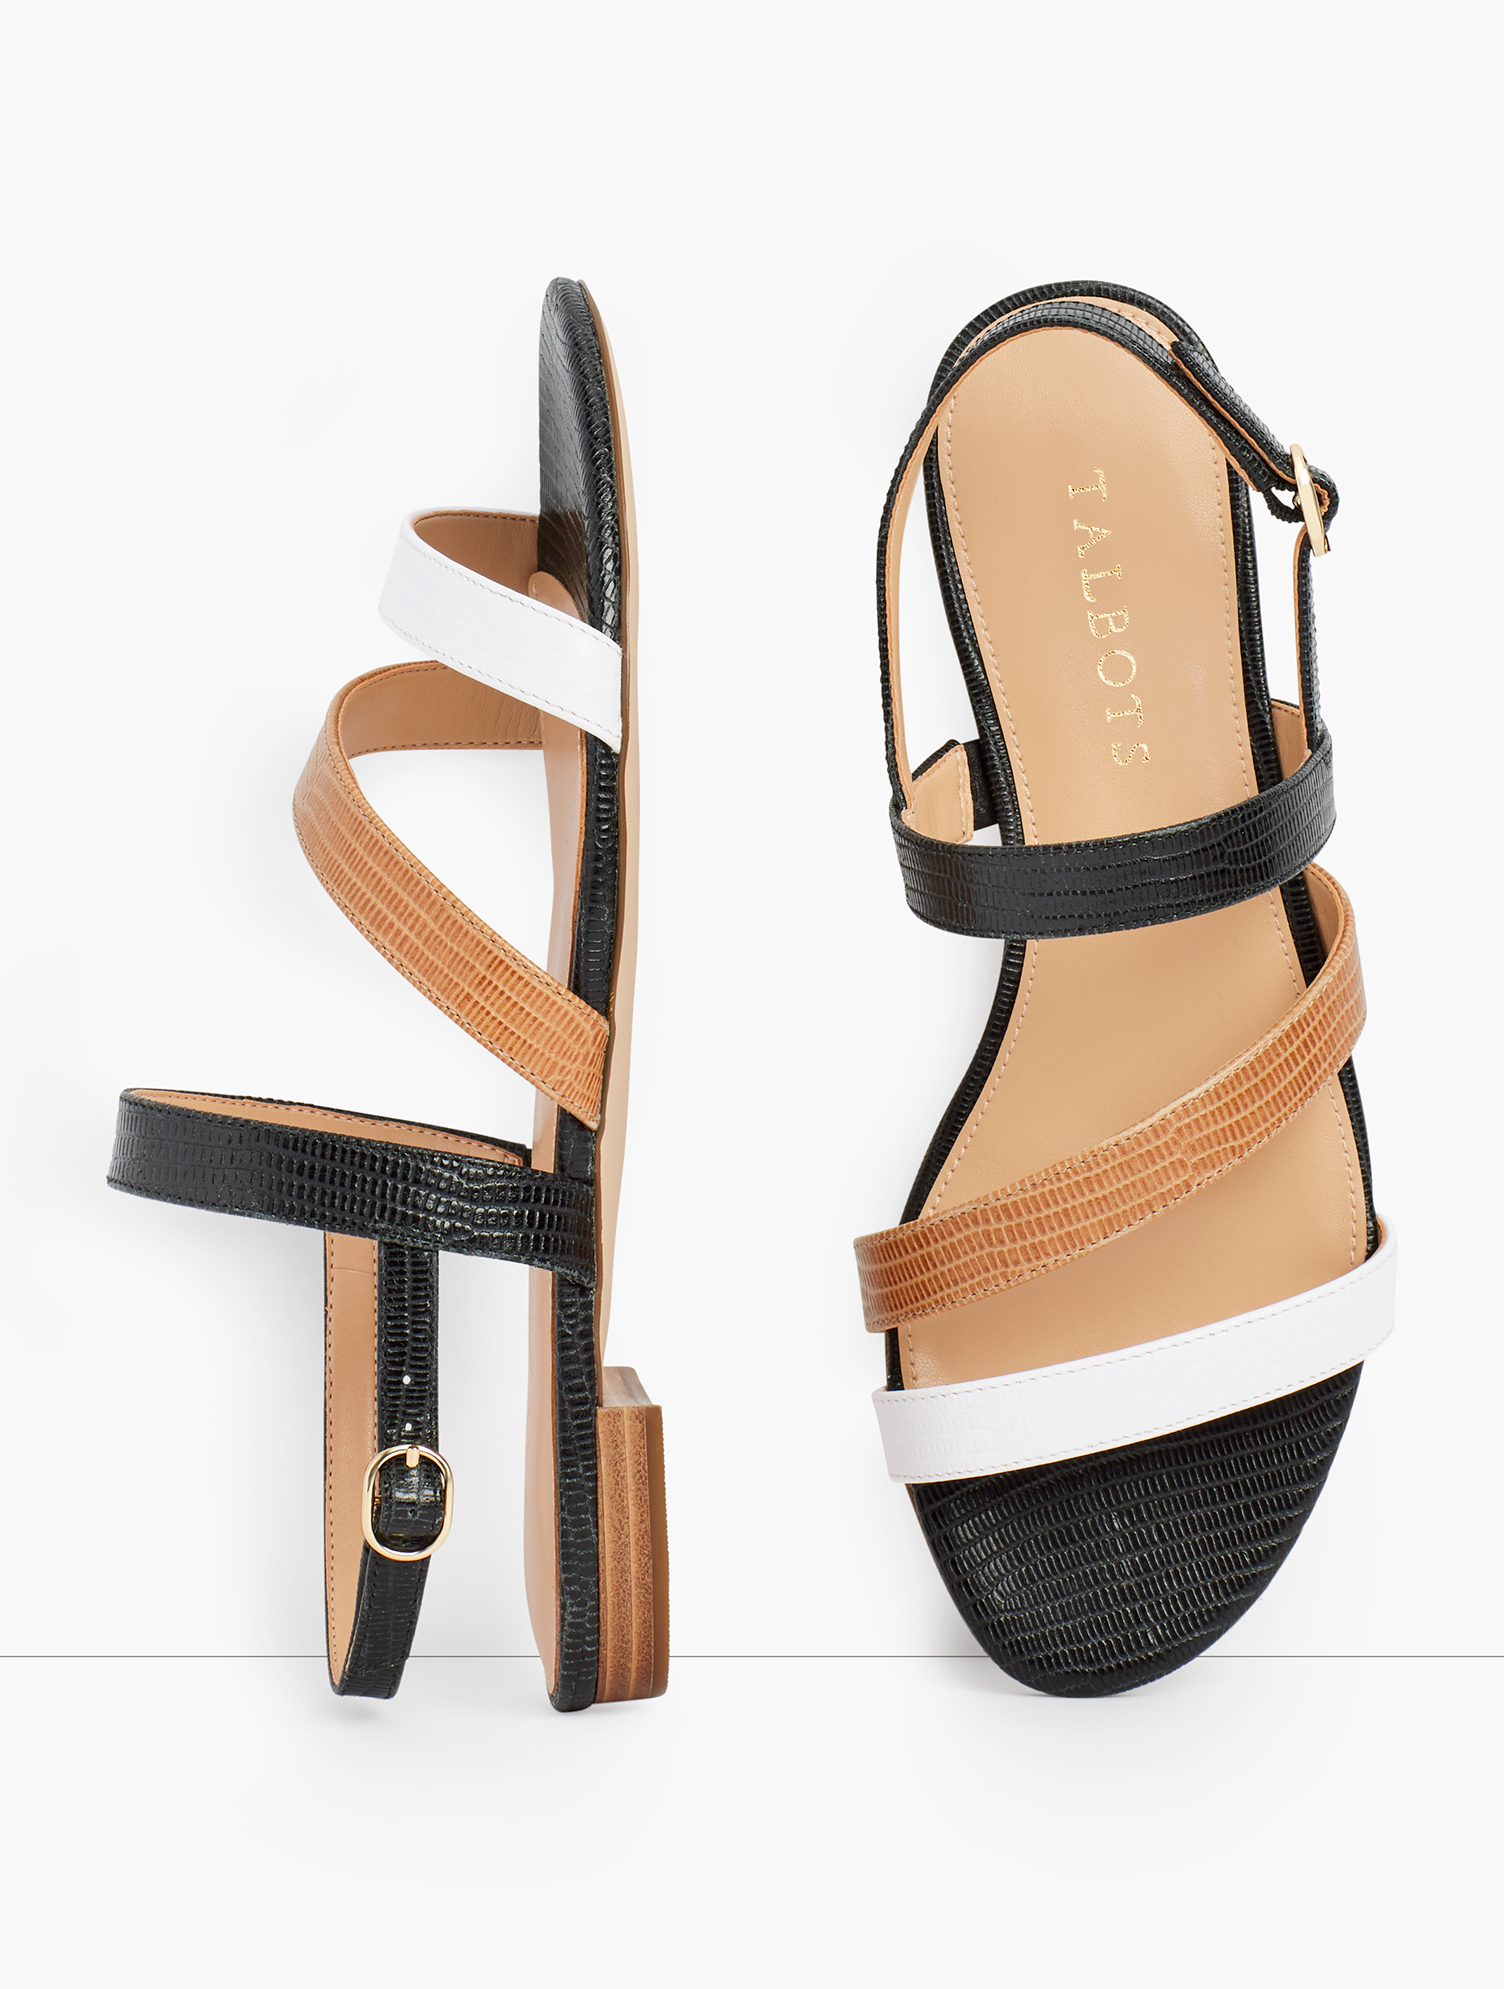 Our Keri Multi Strap Sandals. Ultra chic. Ultra comfortable. With memory foam footbed. Features 1/2 inches heelFlexible Non Skid Outsole9k Shiny Gold Hardware3Mm Memory Foam FootbedImported Material: 100% Leather Keri Multi Strap Sandals - White Havana Tan/Black - 11M Talbots